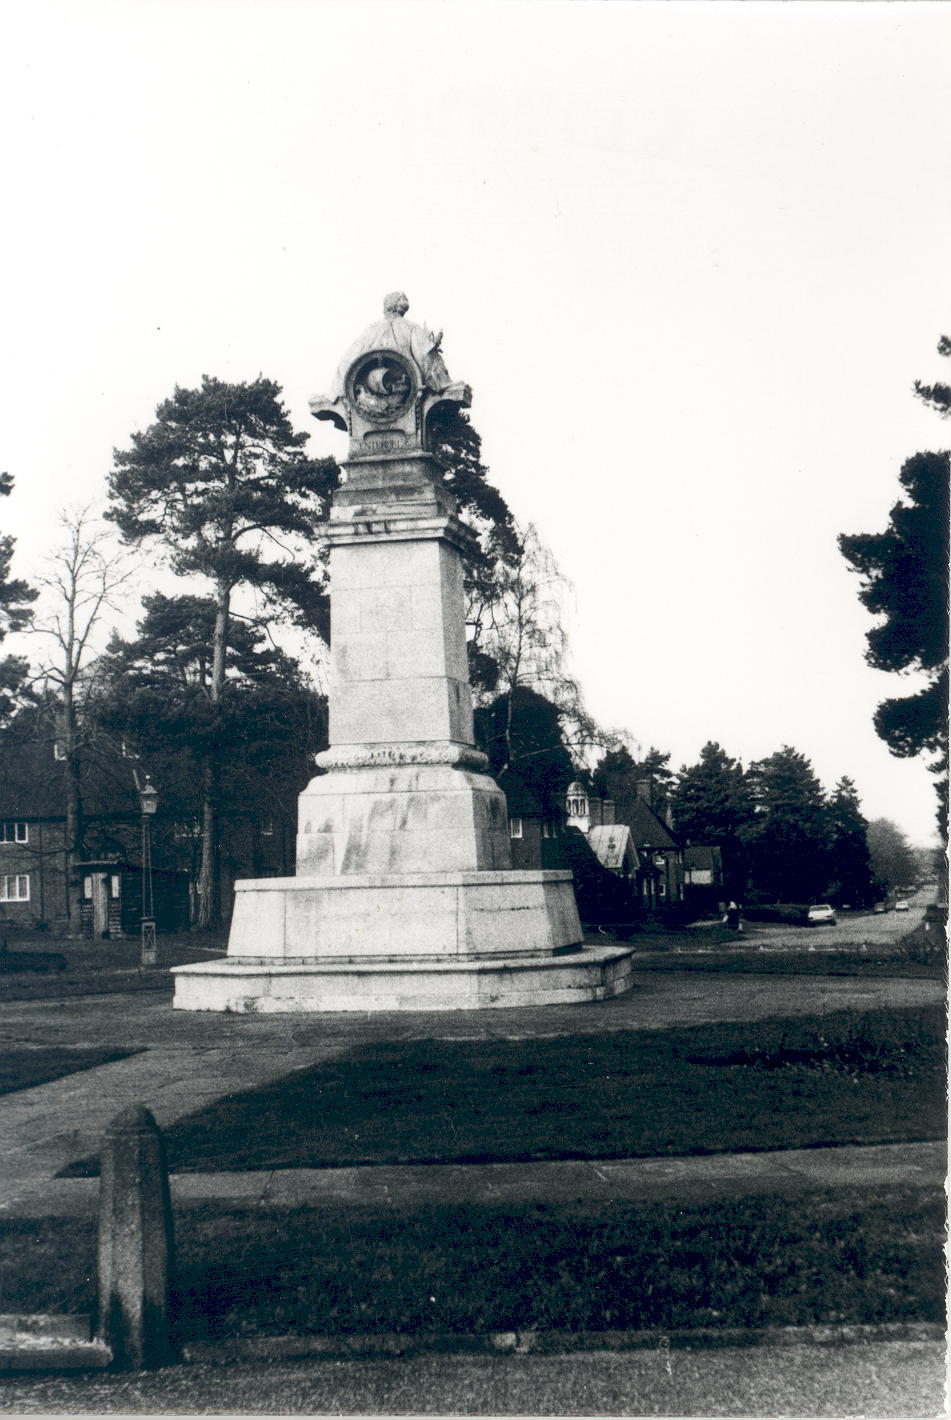 Photograph of the Memorial to William Whiteley taken in 1983. The memorial stands in the centre of the octagon at Whiteley Village on a pavement with grass around.